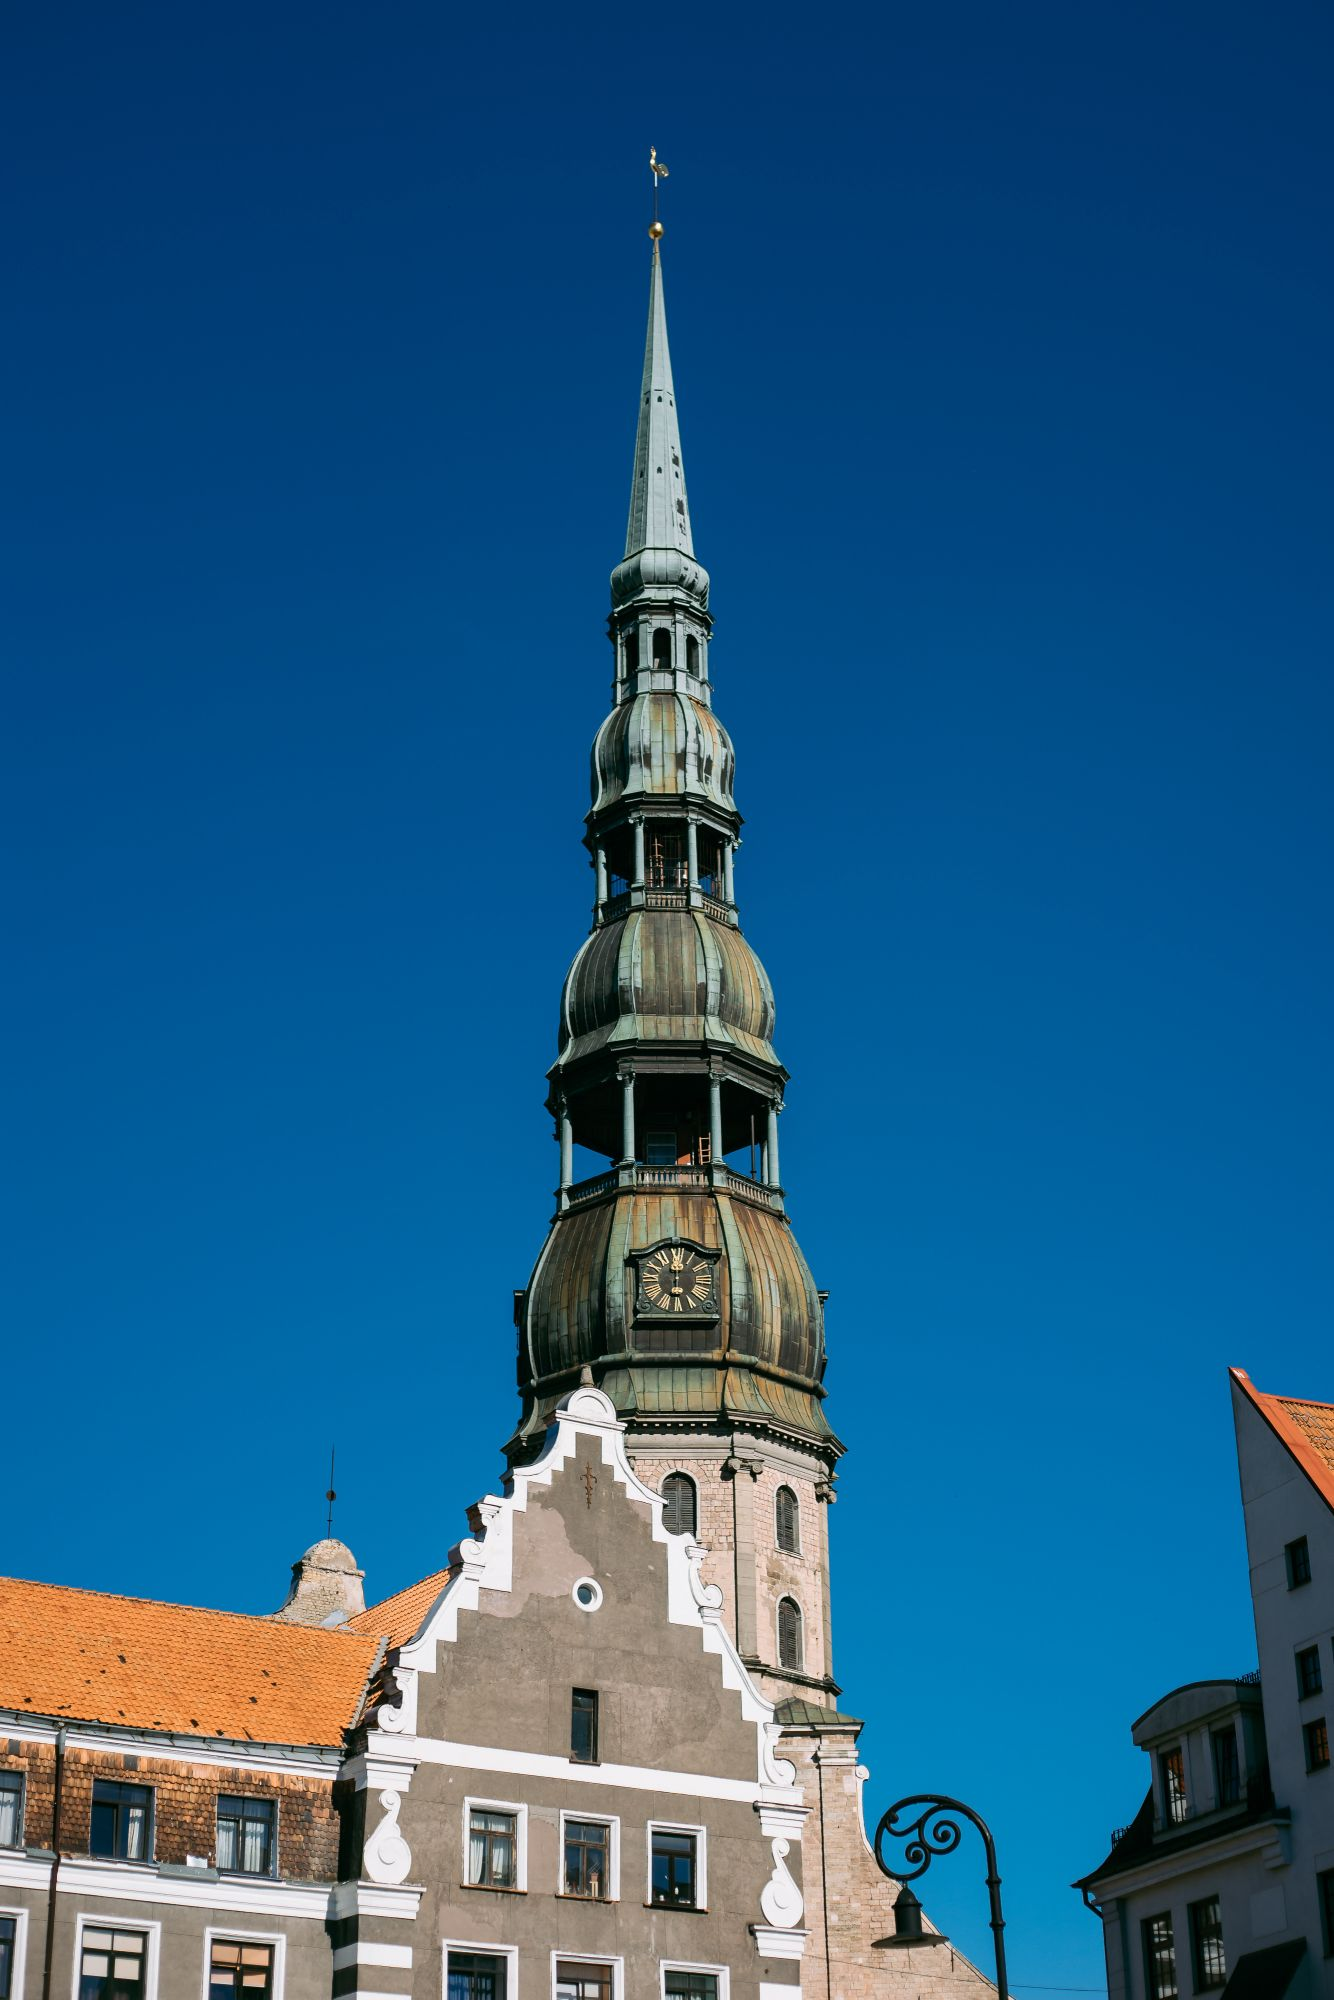 St Peters Church In Riga Latvia Free Photo On Barnimages